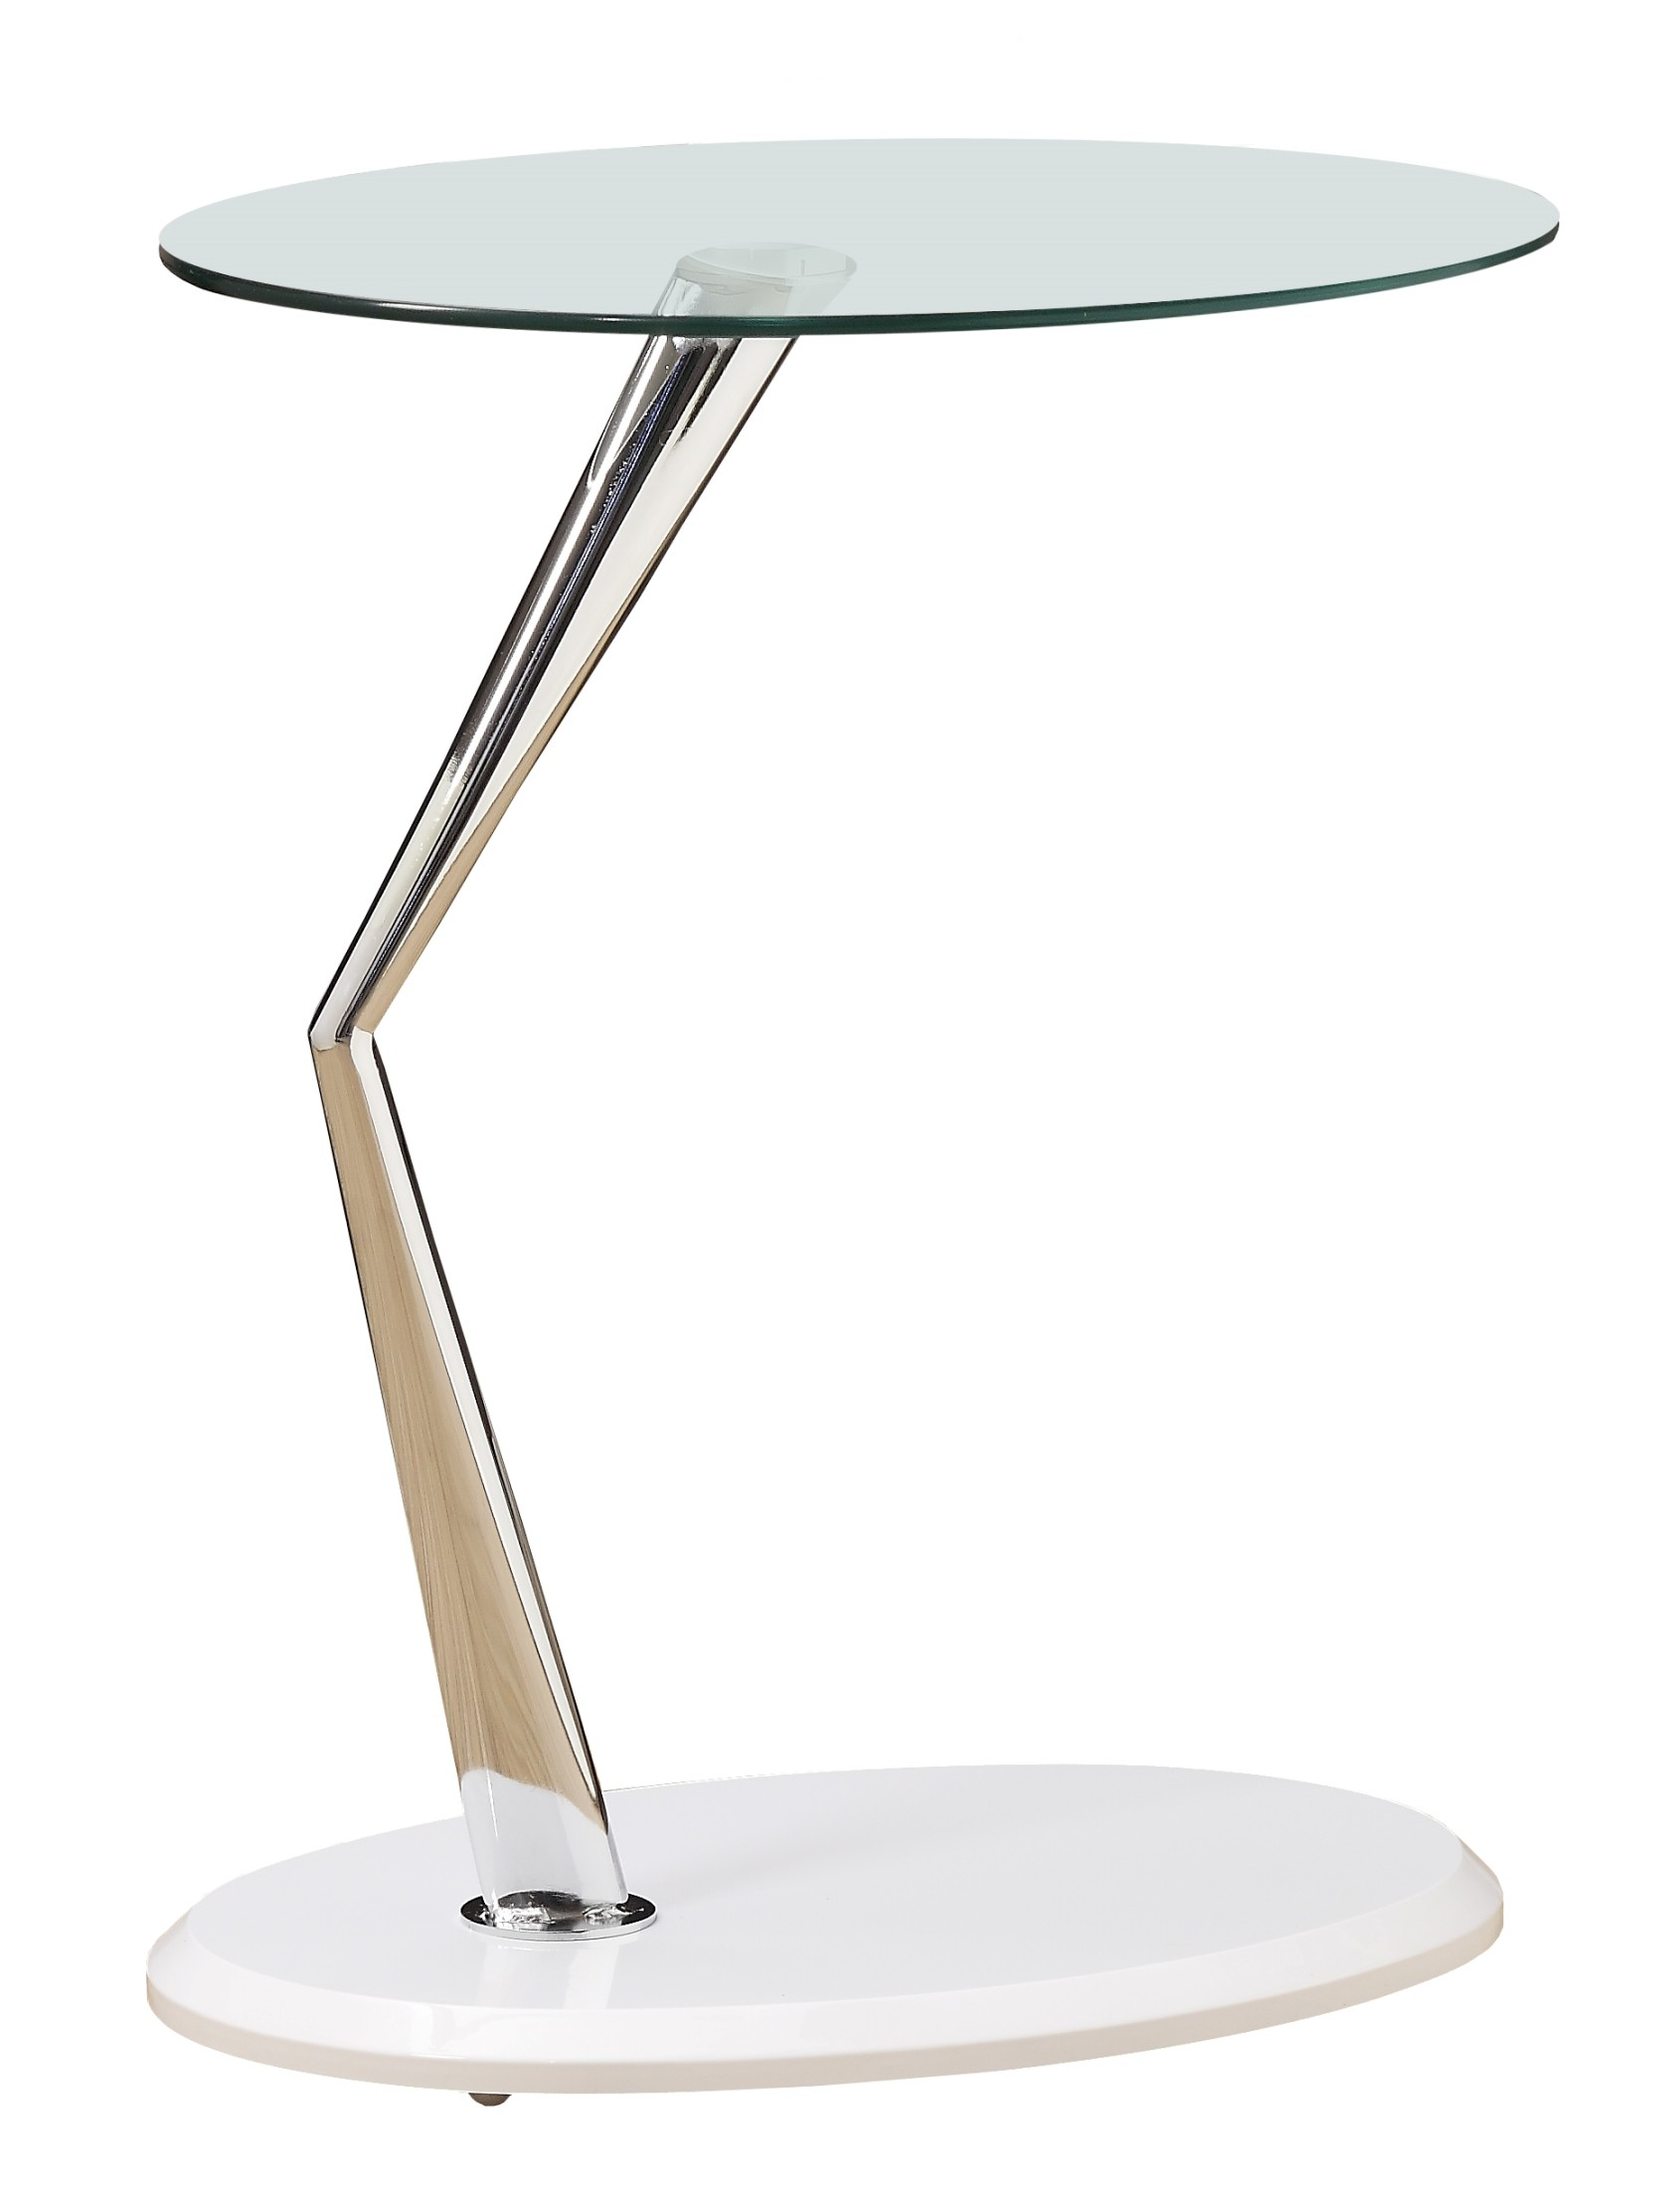 glossy white chrome metal accent table from monarch outdoor small build side rattan chairs cream bedside tables nautical lighting ideas cloth design mosaic outside black round off